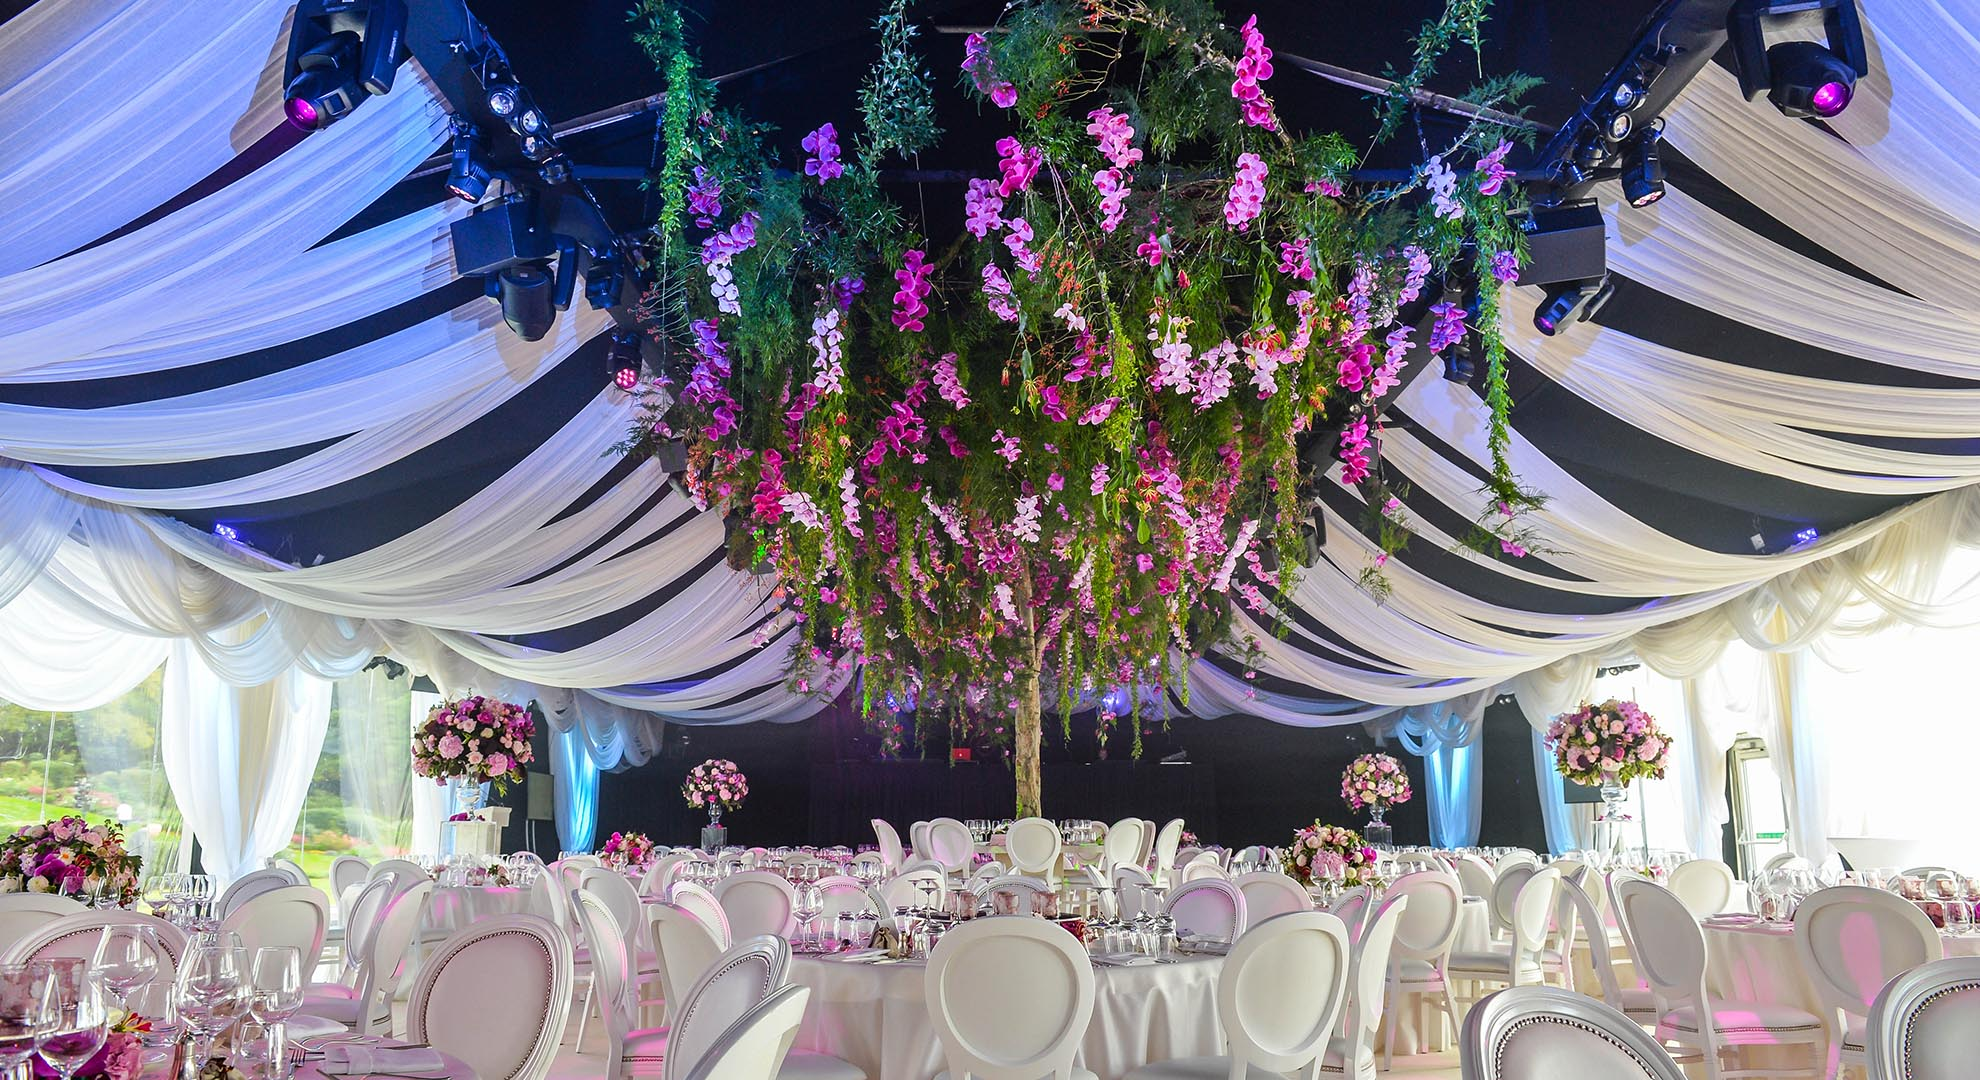 tlc ltd Corporate Events planners Manchester home gallery 2020